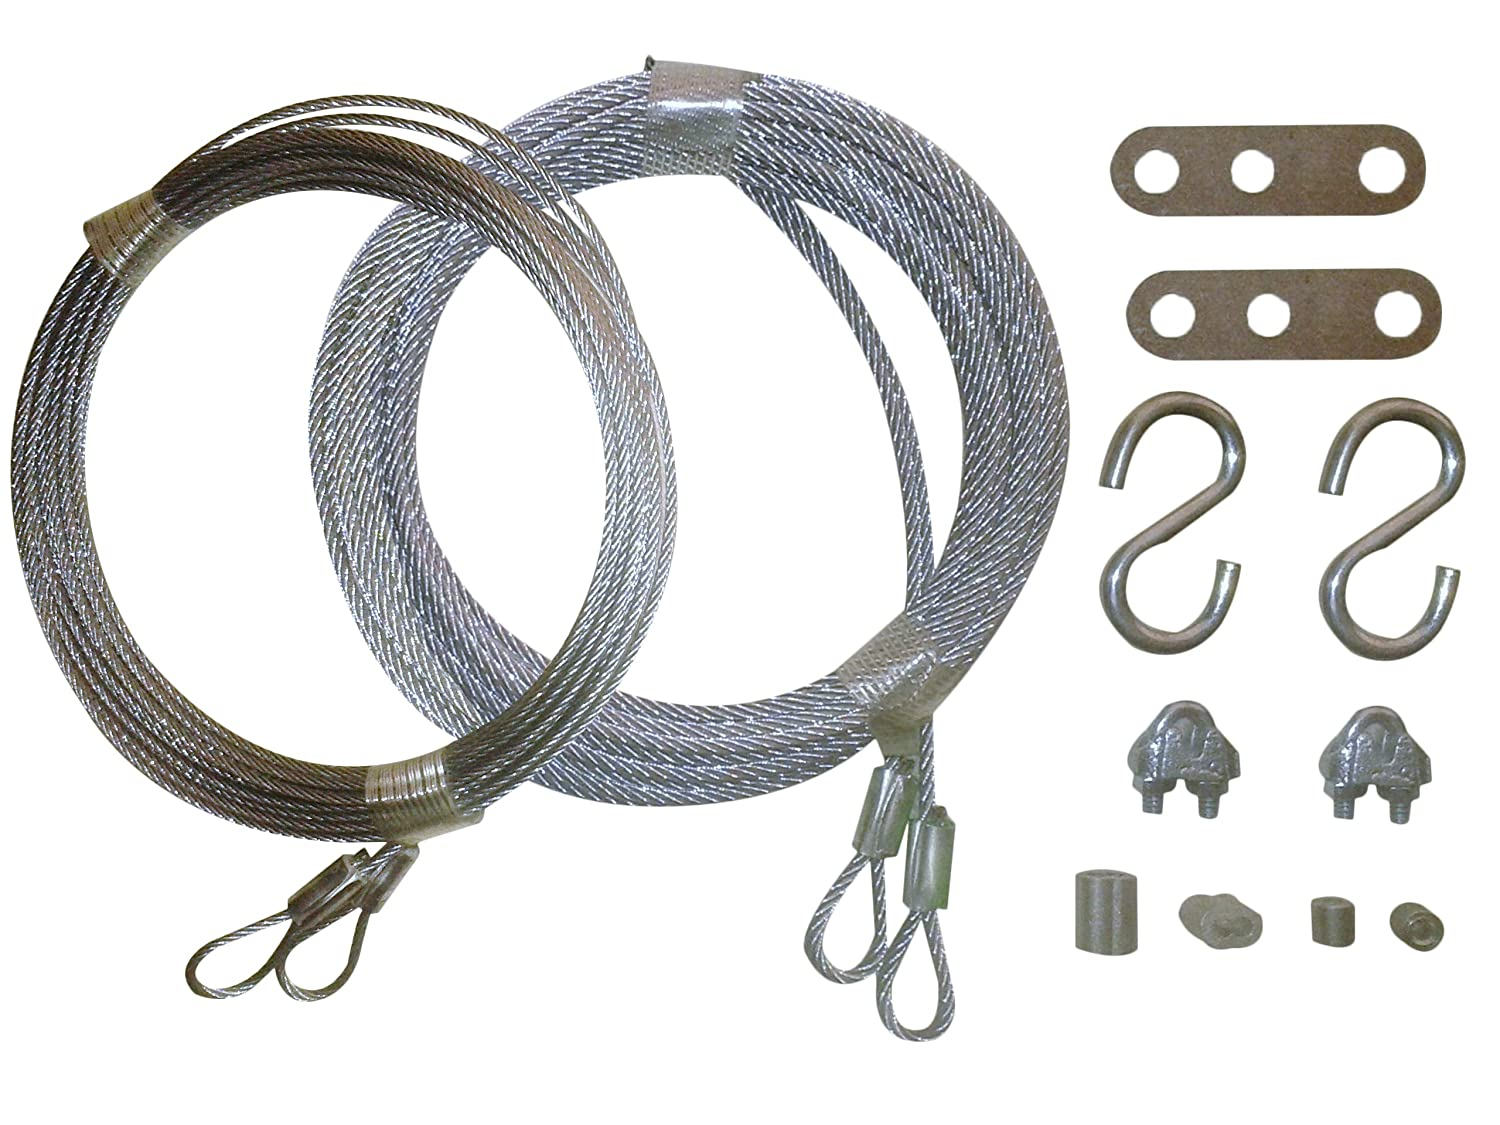 Amazon.com: Garage Door Cable Replacement Kit - Two 3/32 inch x 14 ...